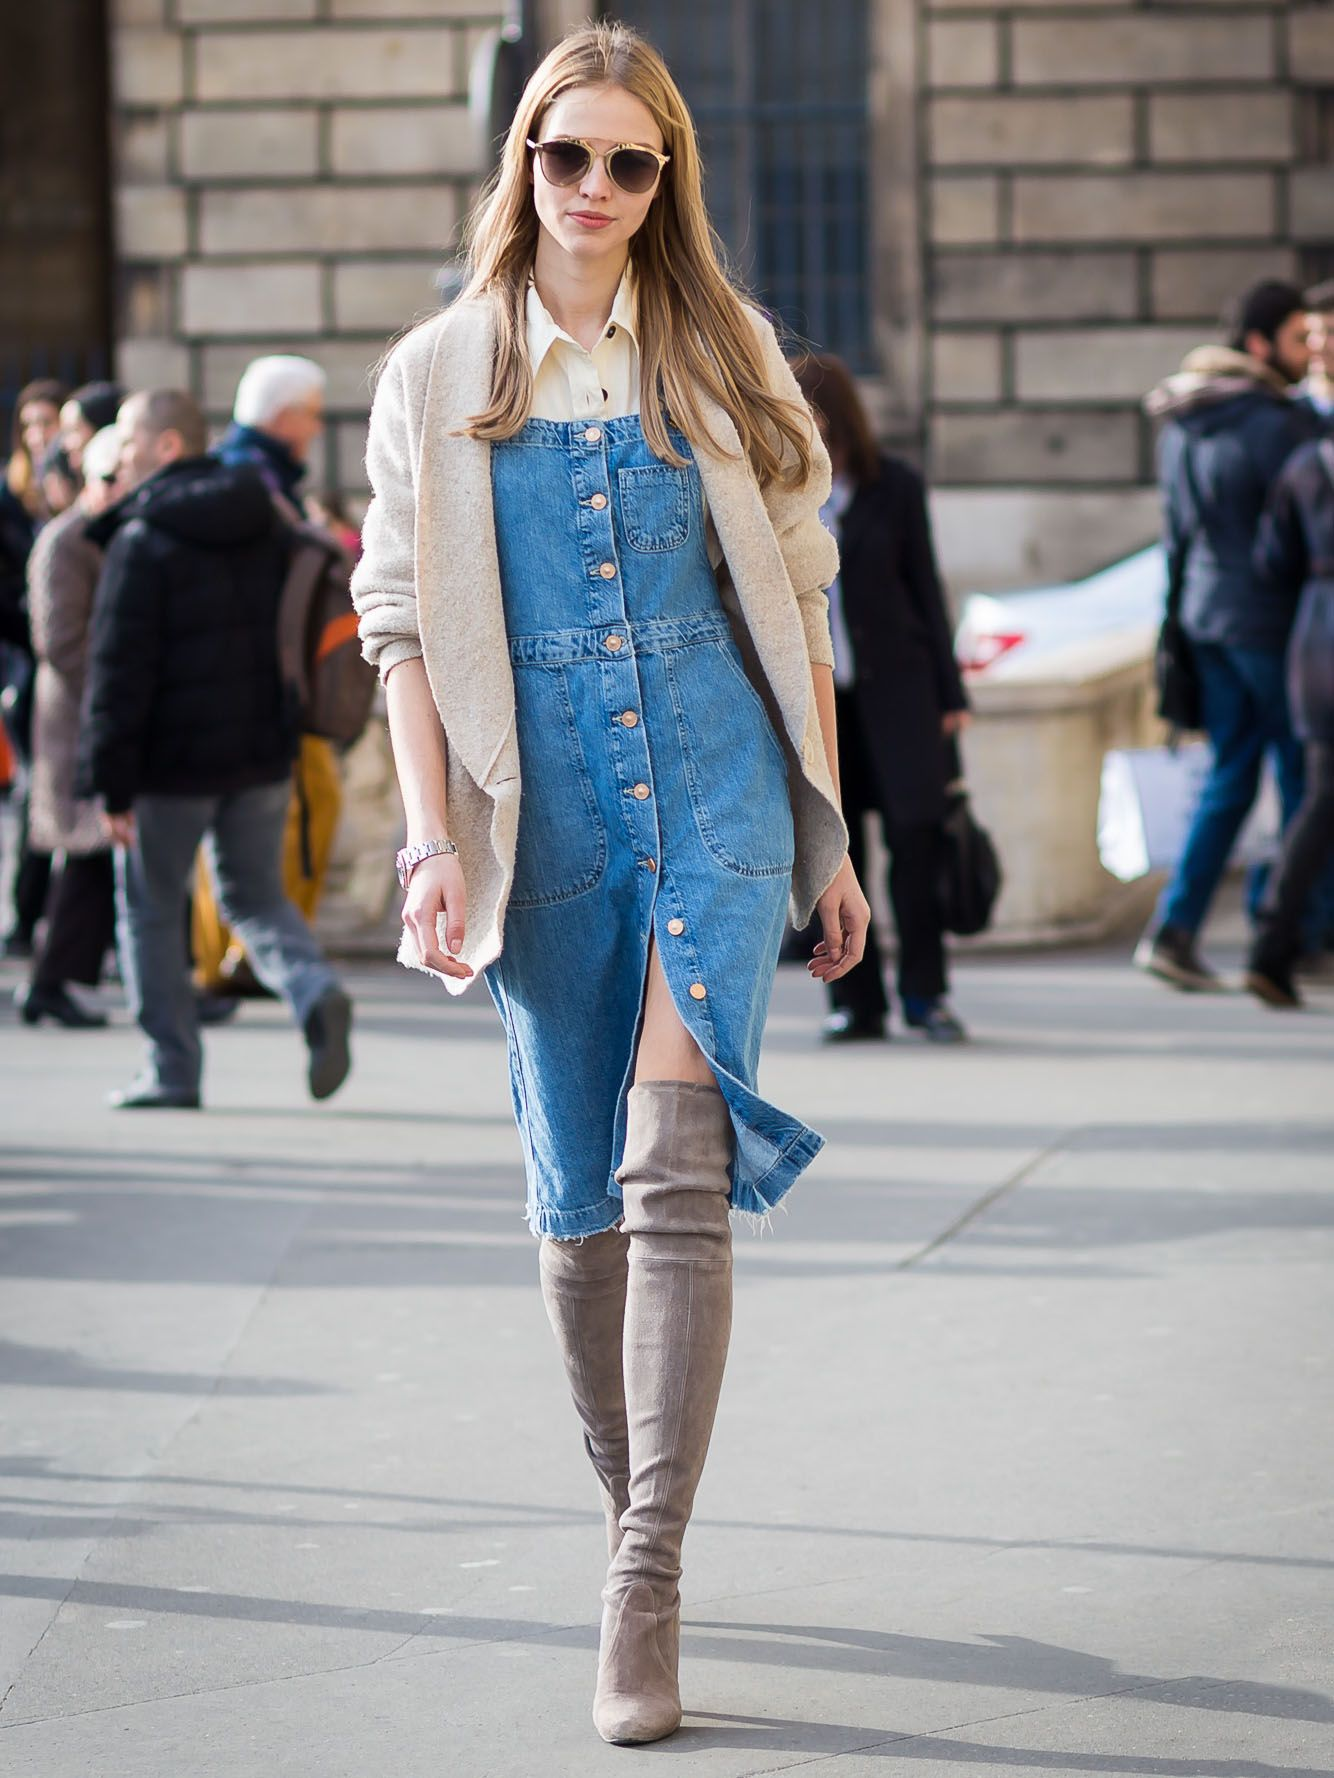 Yes, You Can Pull Off an Overall Dress – Fashion Jerseys